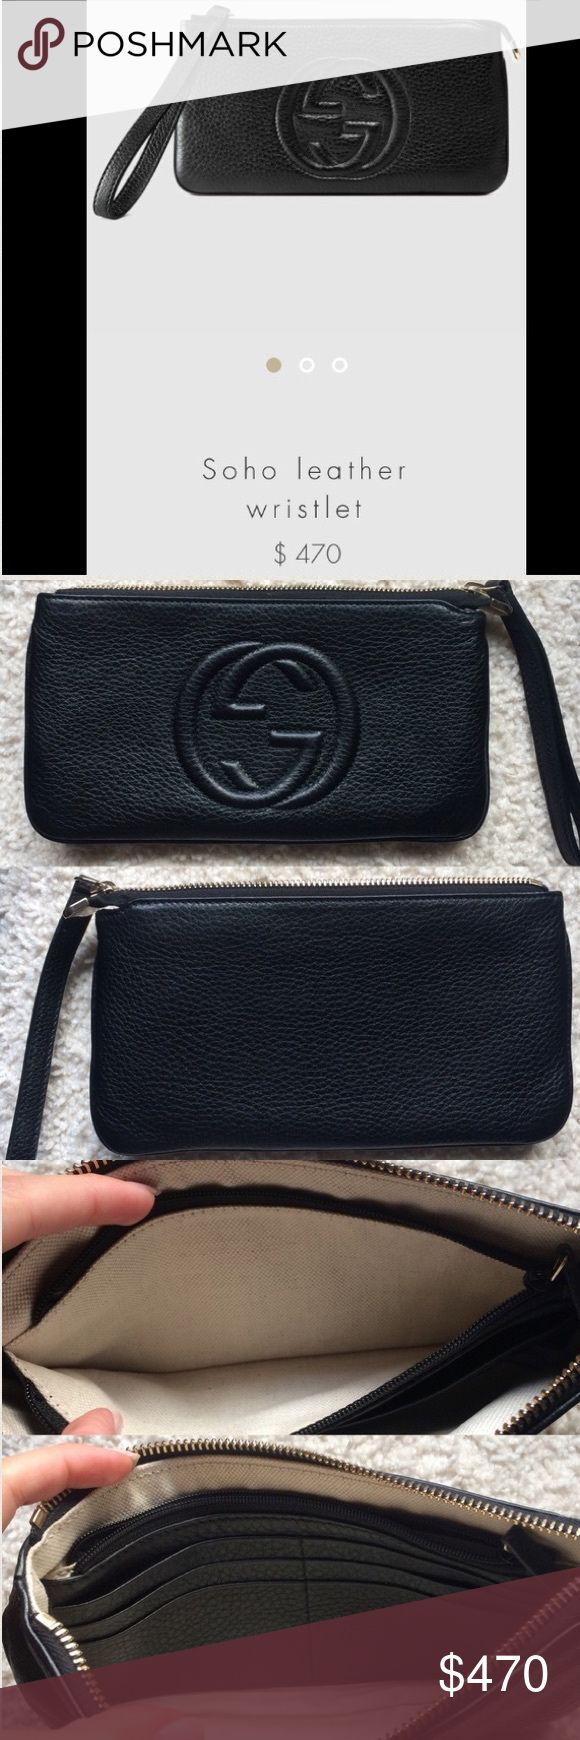 Sale❤️ Gucci Soho Leather Wristlet Sale❤️ Authentic Gucci Leather Wristlet. Black Leather. Embossed interlocking G detail. Top Zip closer with coordinating leather pull. I received this as a gift and I have never worn it! Mint condition. Price firm👌🏻 Gucci Bags Clutches & Wristlets